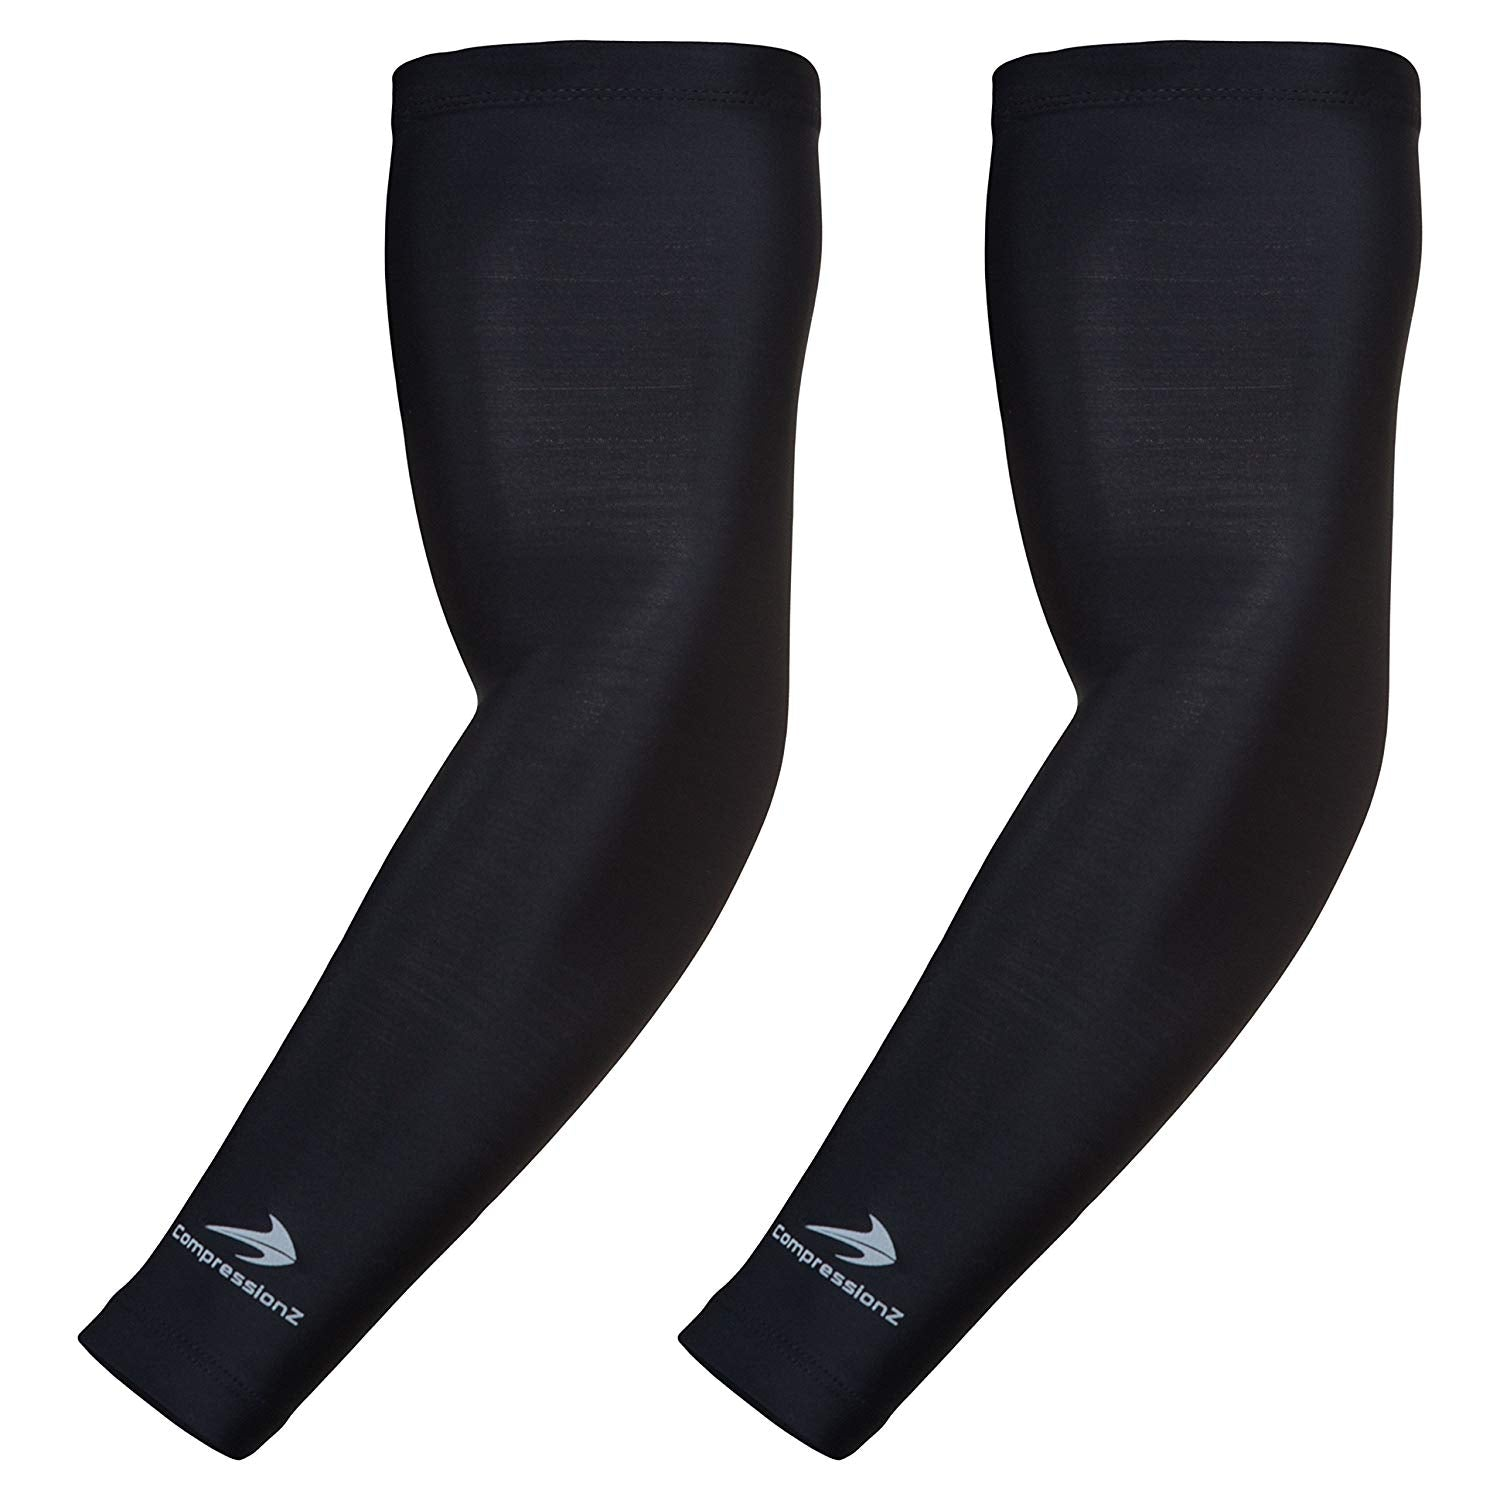 Youth Arm Sleeves - Black